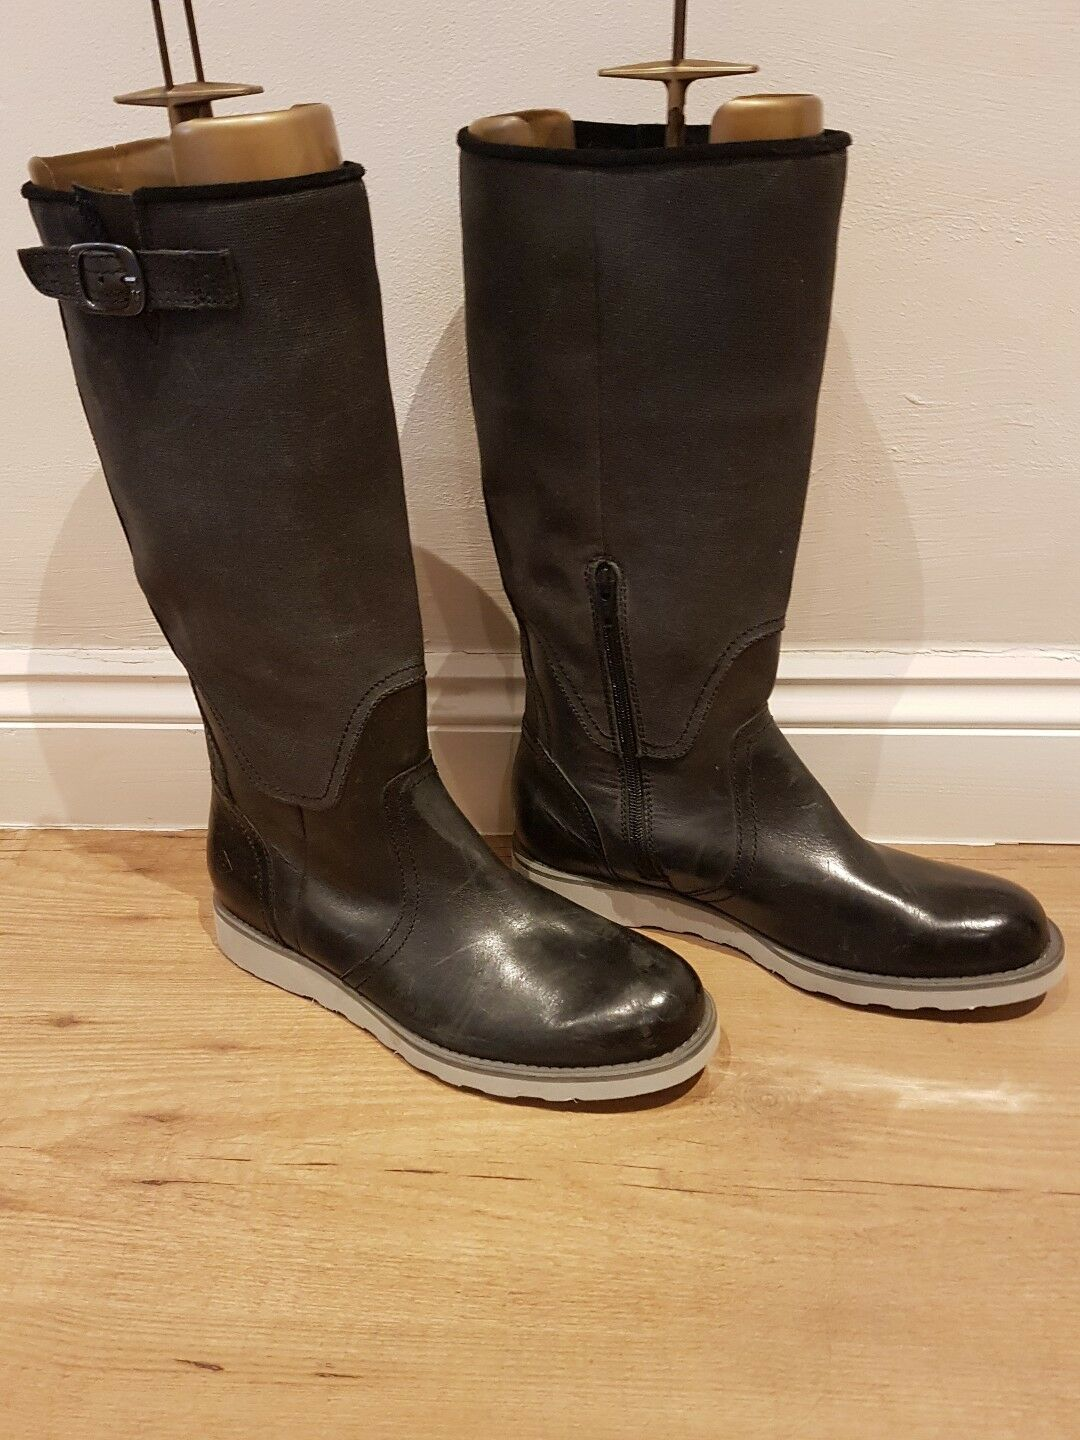 LADIES G STAR UK BOOTS UK STAR SIZE 8 b20cd9